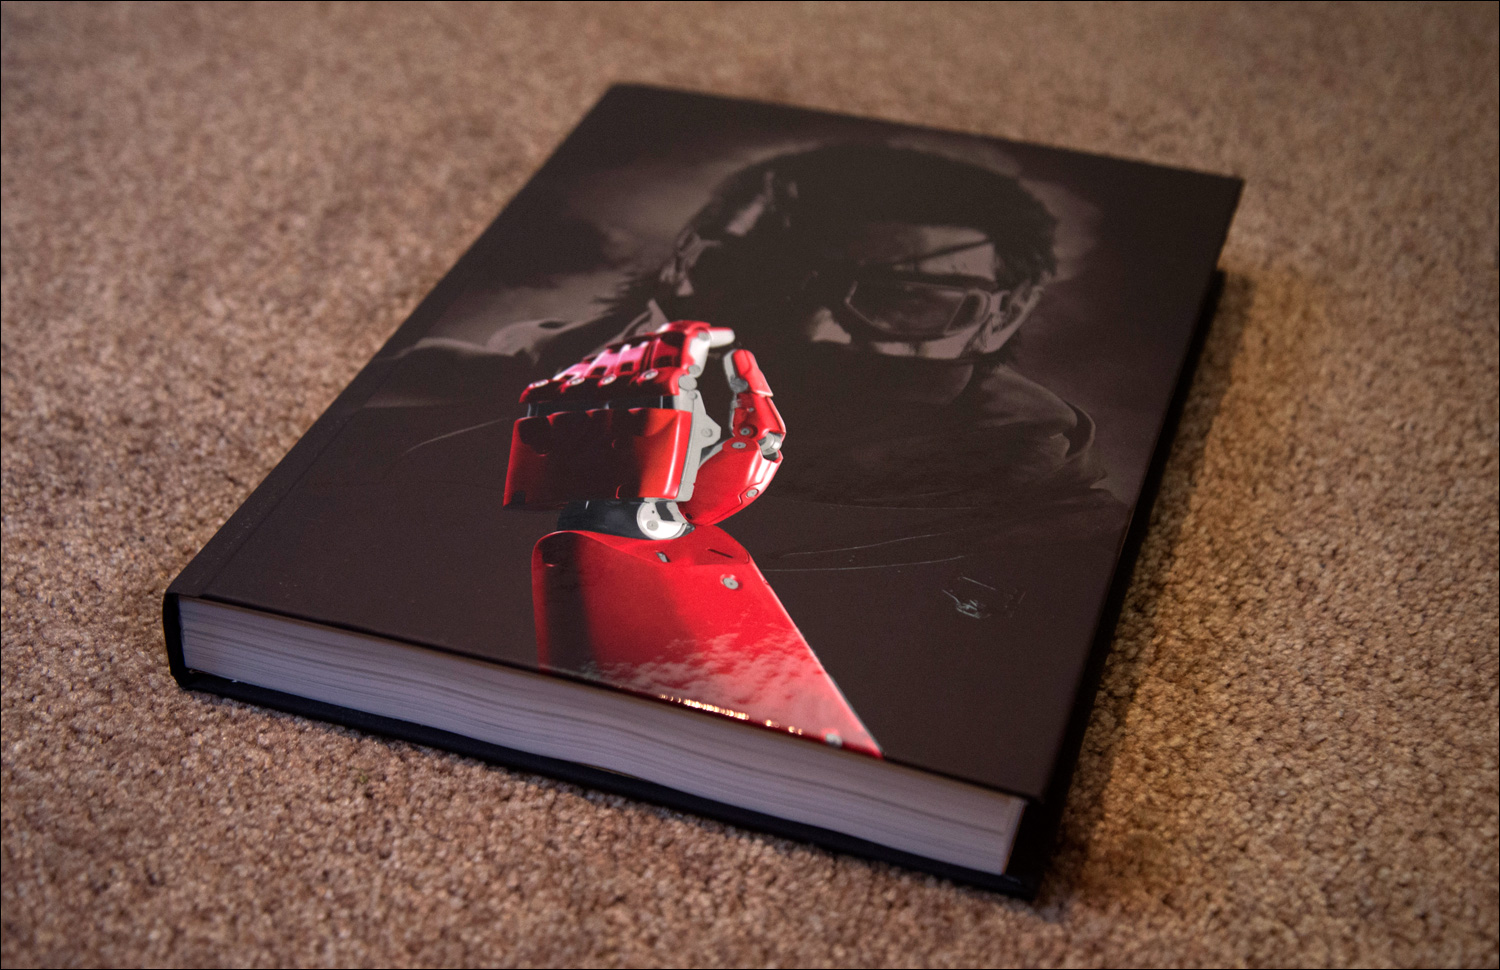 Metal-Gear-Solid-V-The-Phantom-Pain-Collector's-Edition-Guide